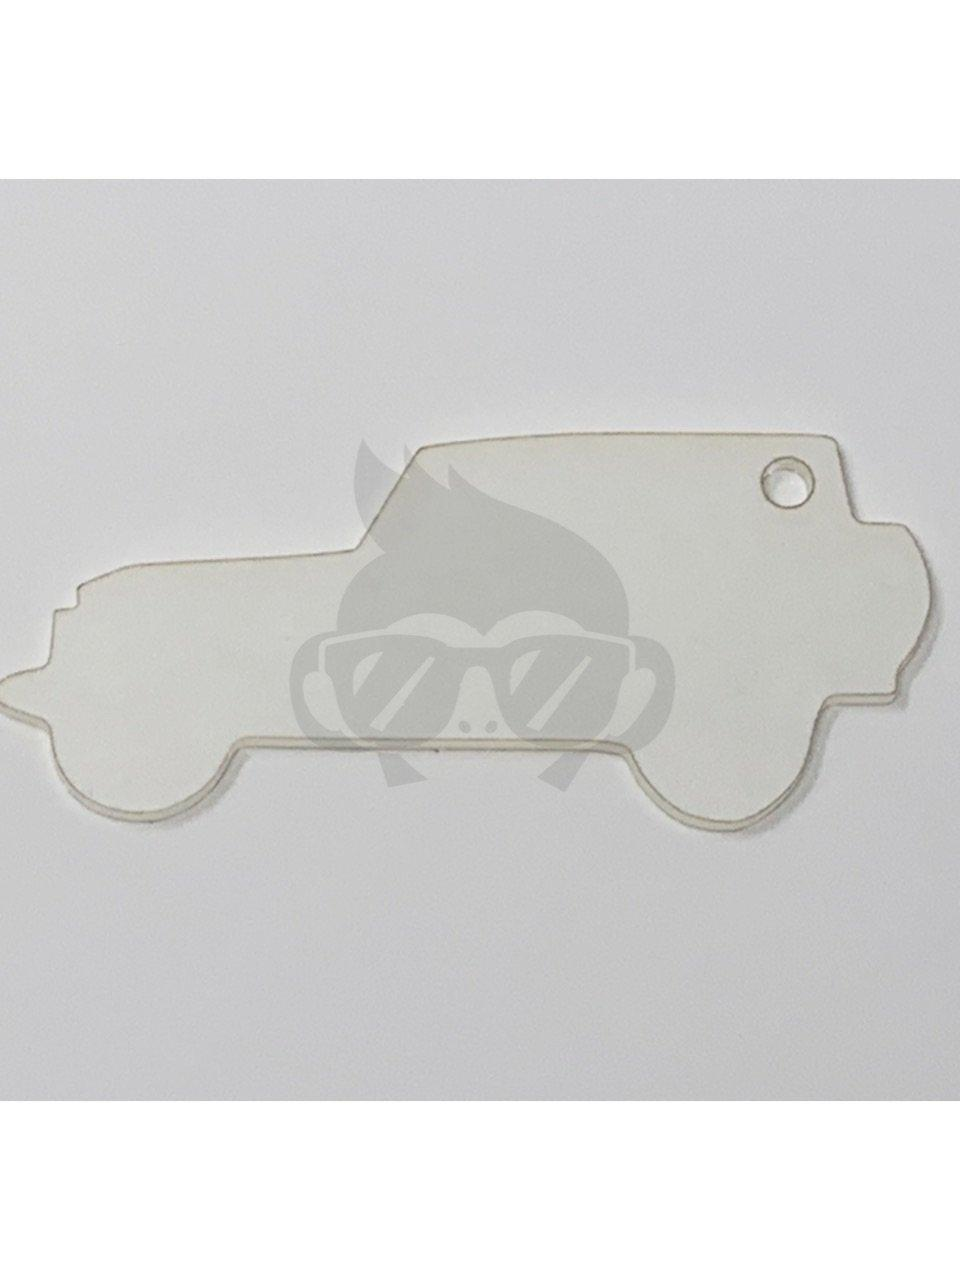 Acrylic 4X4 SUV Shaped Key Chain